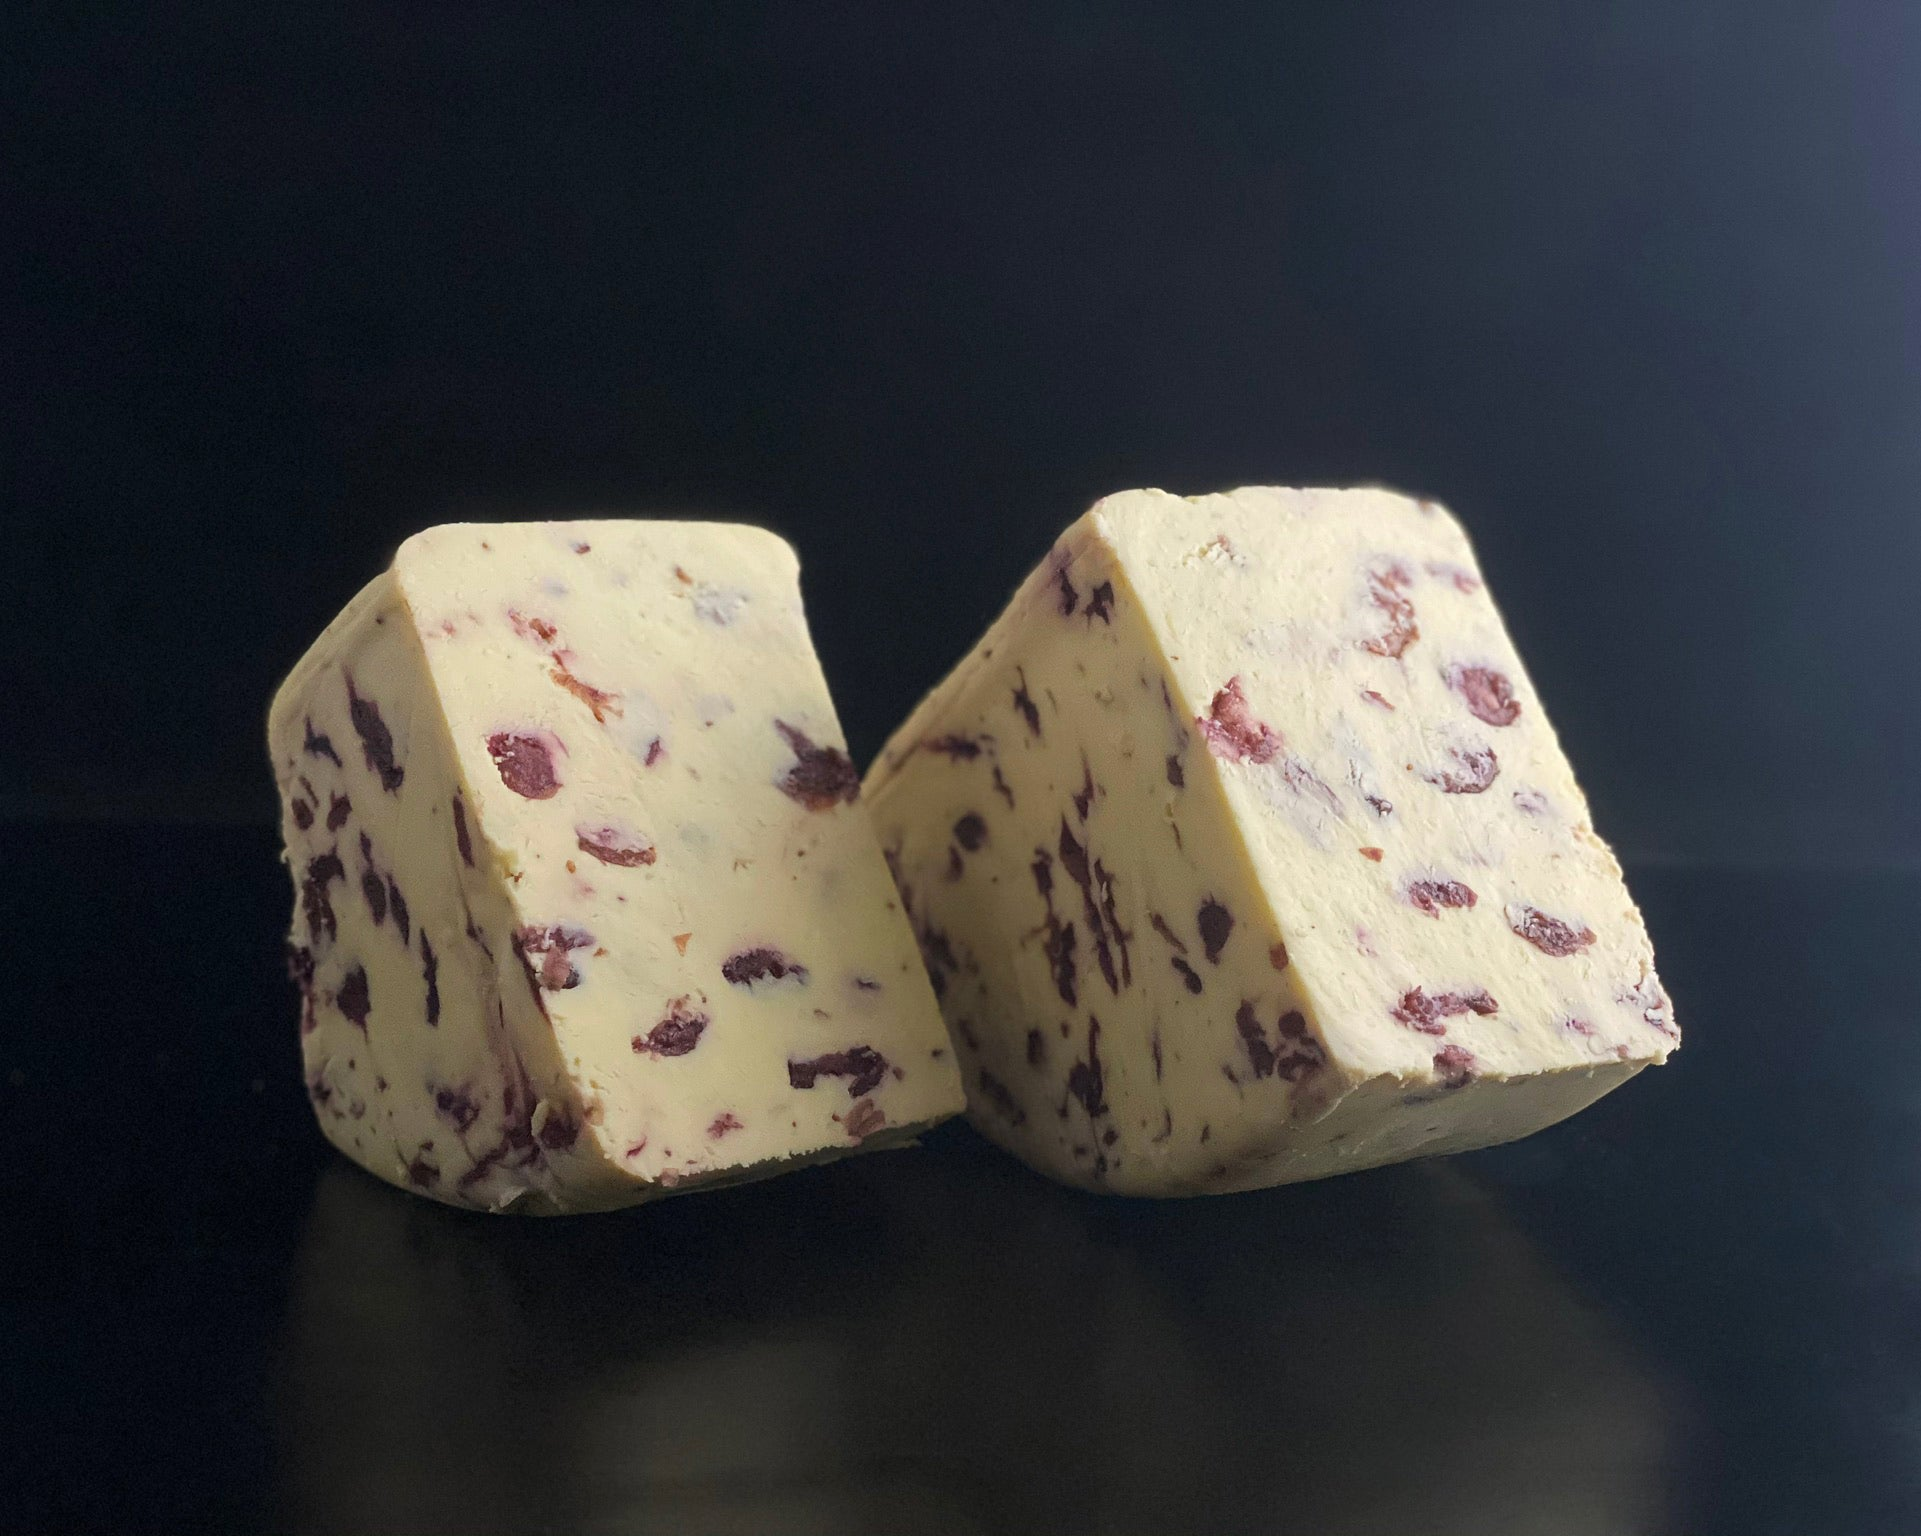 Matthew's Cheese: Hawes Wensleydale and cranberries 250g